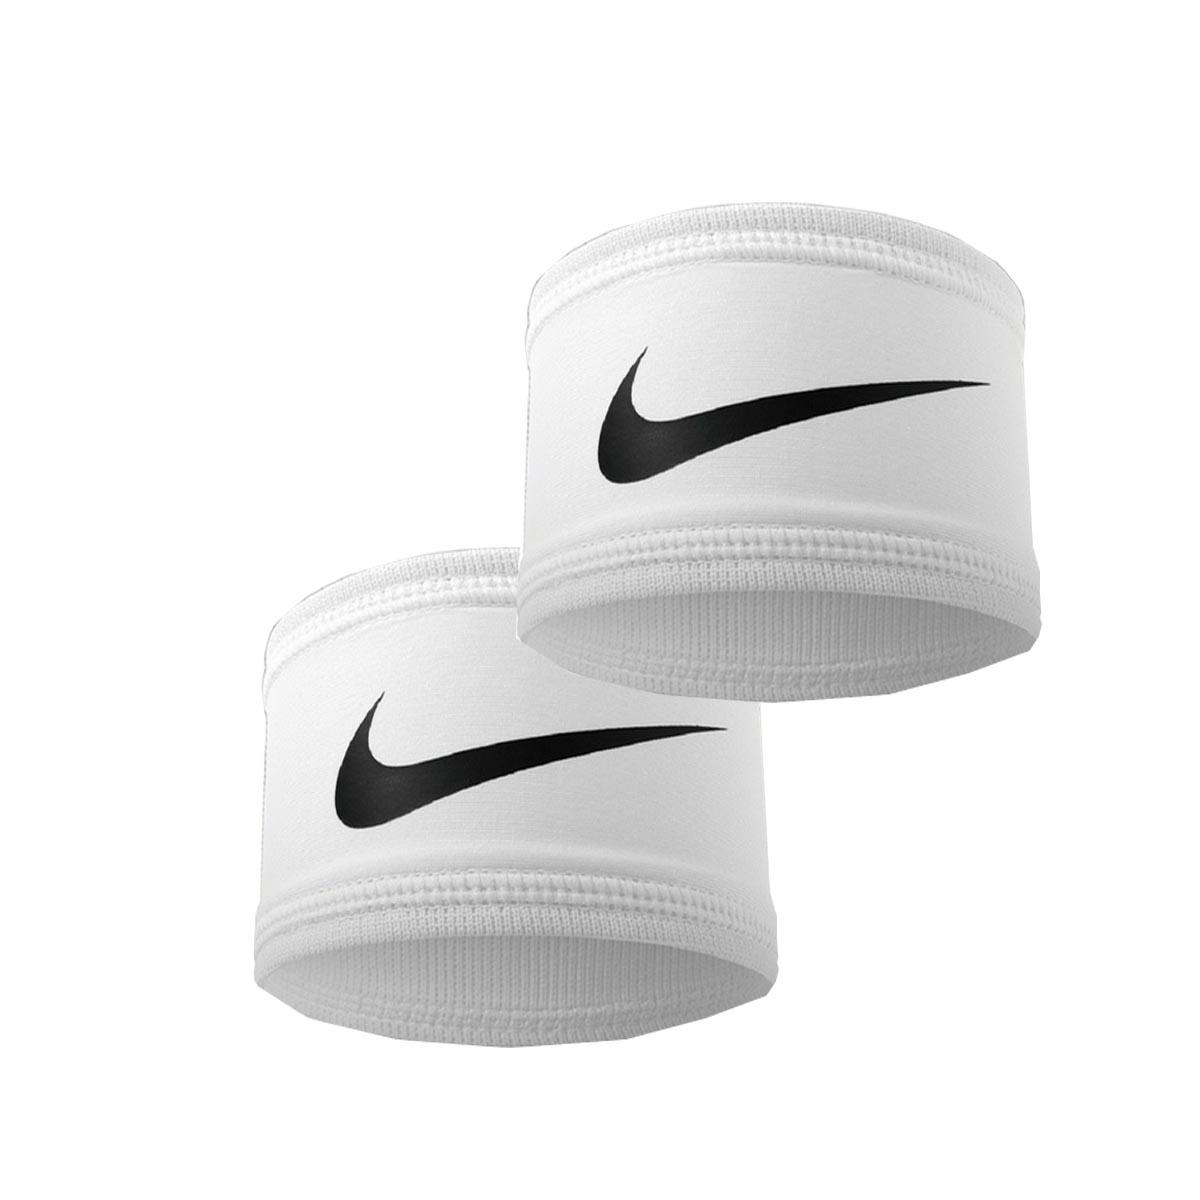 superior quality size 40 great fit Nike Speed Performance Armband (Pair - White)